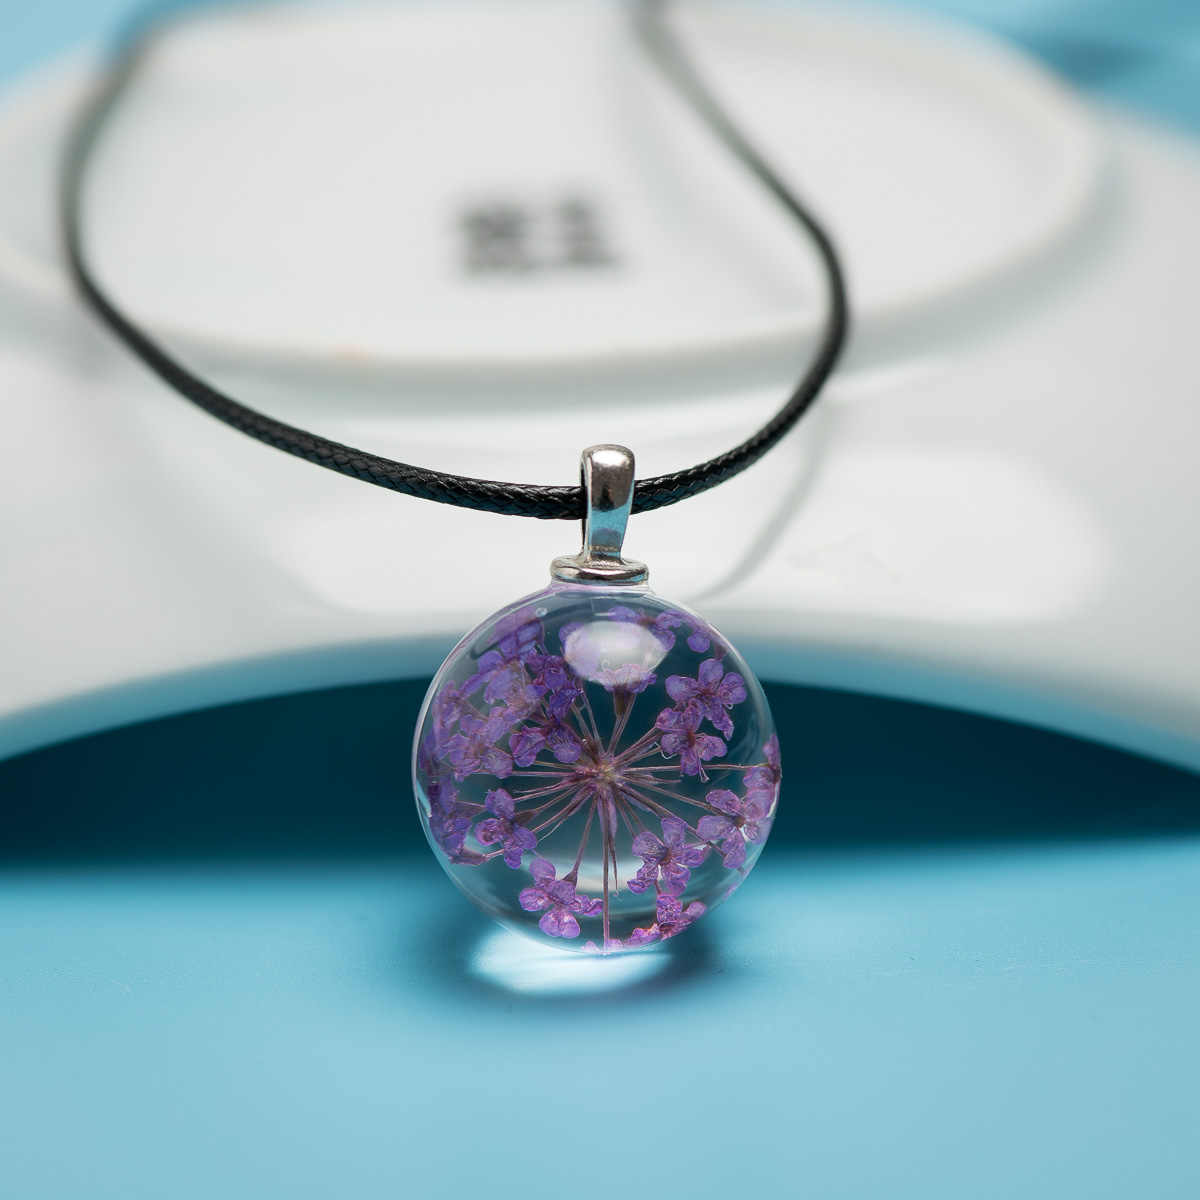 Natural Dried Flower Glass Ball Pendant long Rope Necklace with Ceramic Beads Drop shipping #FY311